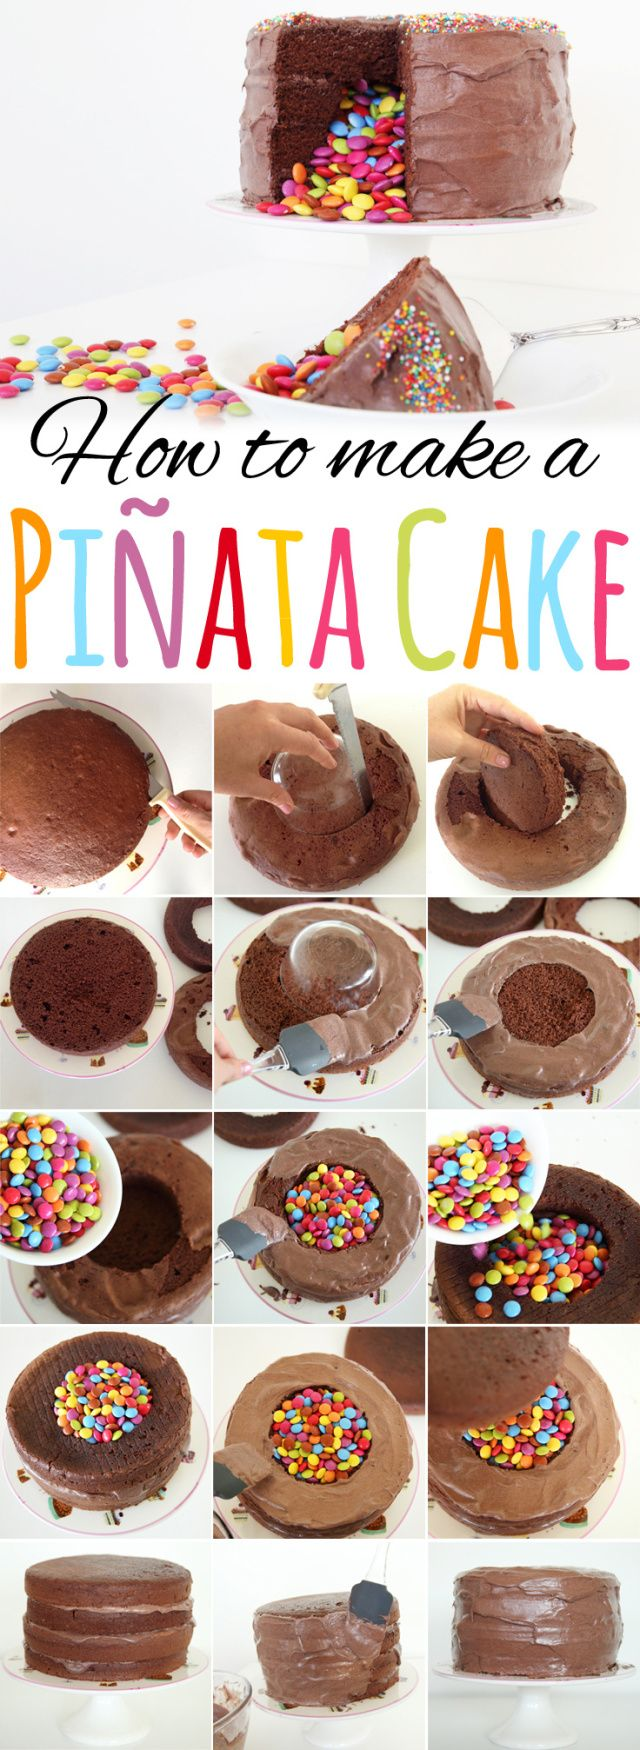 Food Design How To Make A Pinata Cake